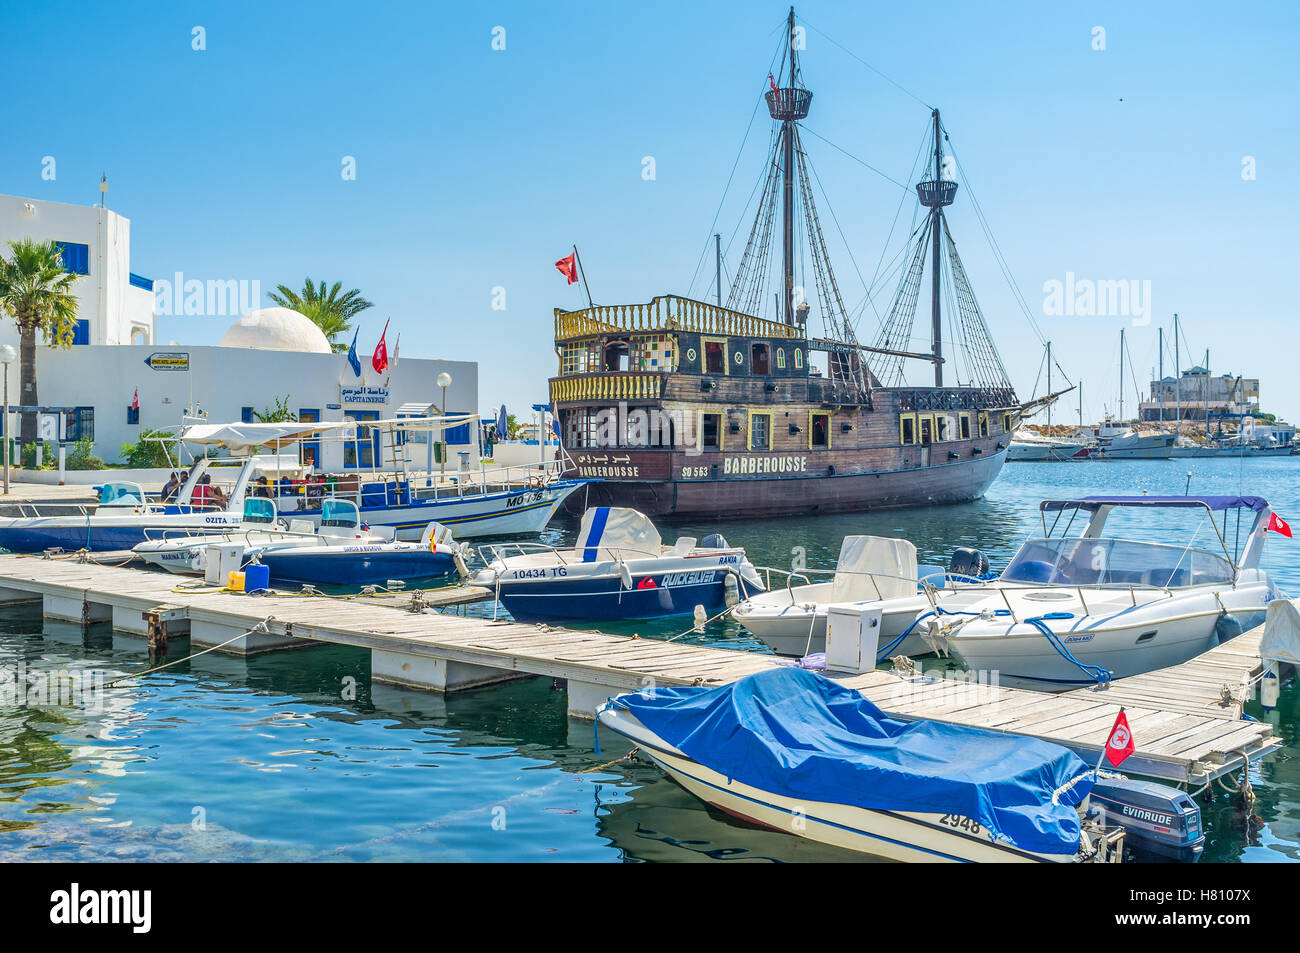 All the resorts of Tunisia boast the beautiful wooden pirate galleons for the tourist enjoy, Monastir - Stock Image